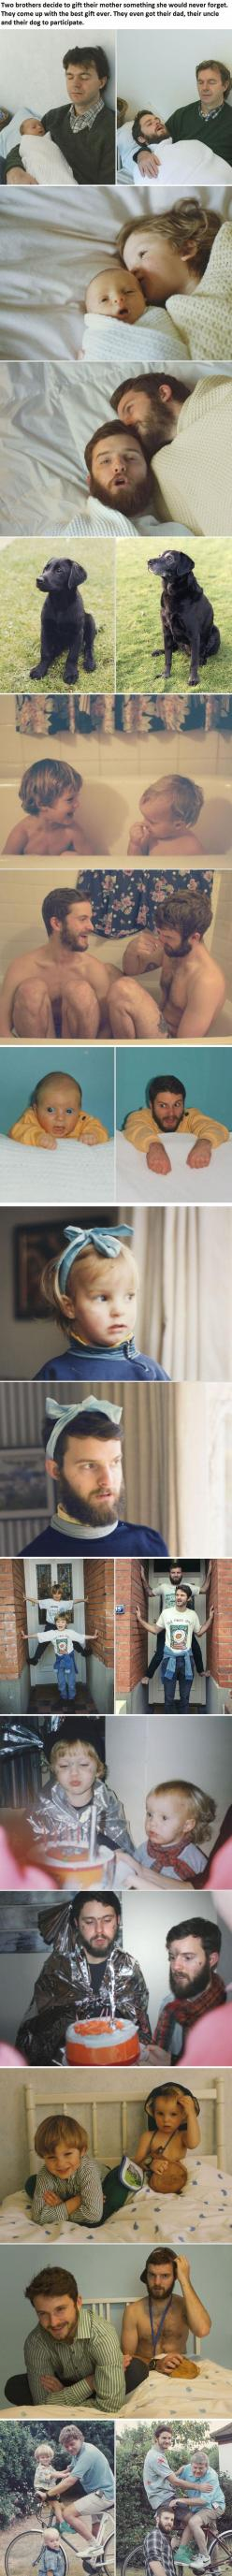 Two Awesome Brothers Come Up With a Brilliant Idea...: Idea, Gift, Mothers, Photo Recreation, So Funny, Awesome Brothers